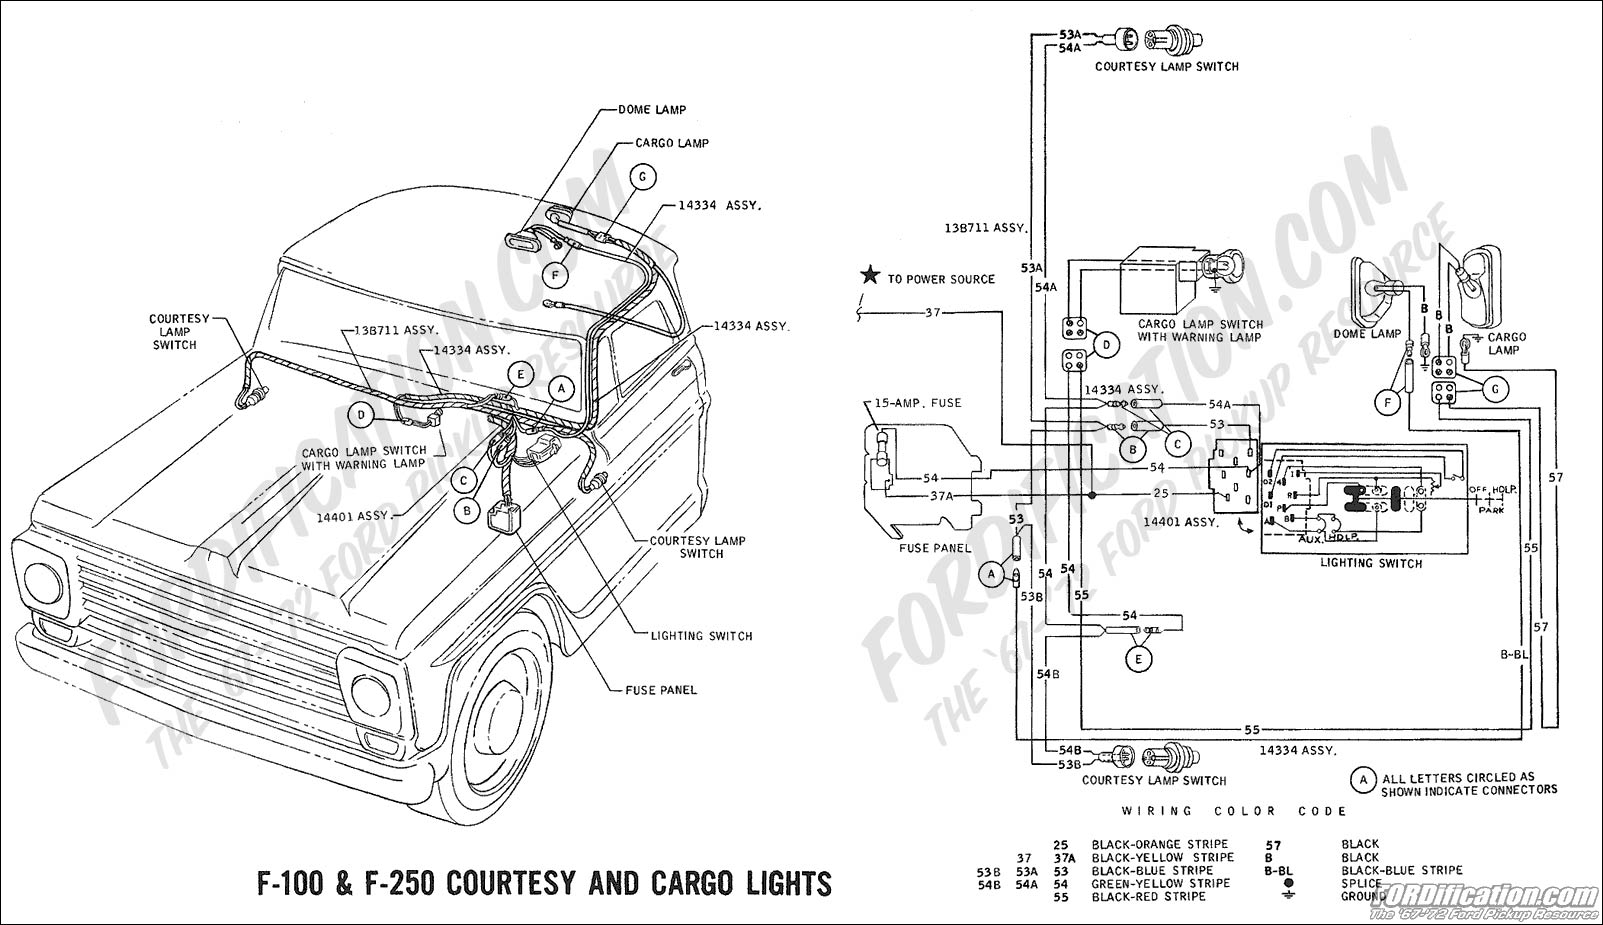 1952c 71 ford f100 wiring diagram wiring resources 2006 ford truck wiring diagram 71 ford truck wiring diagram #12